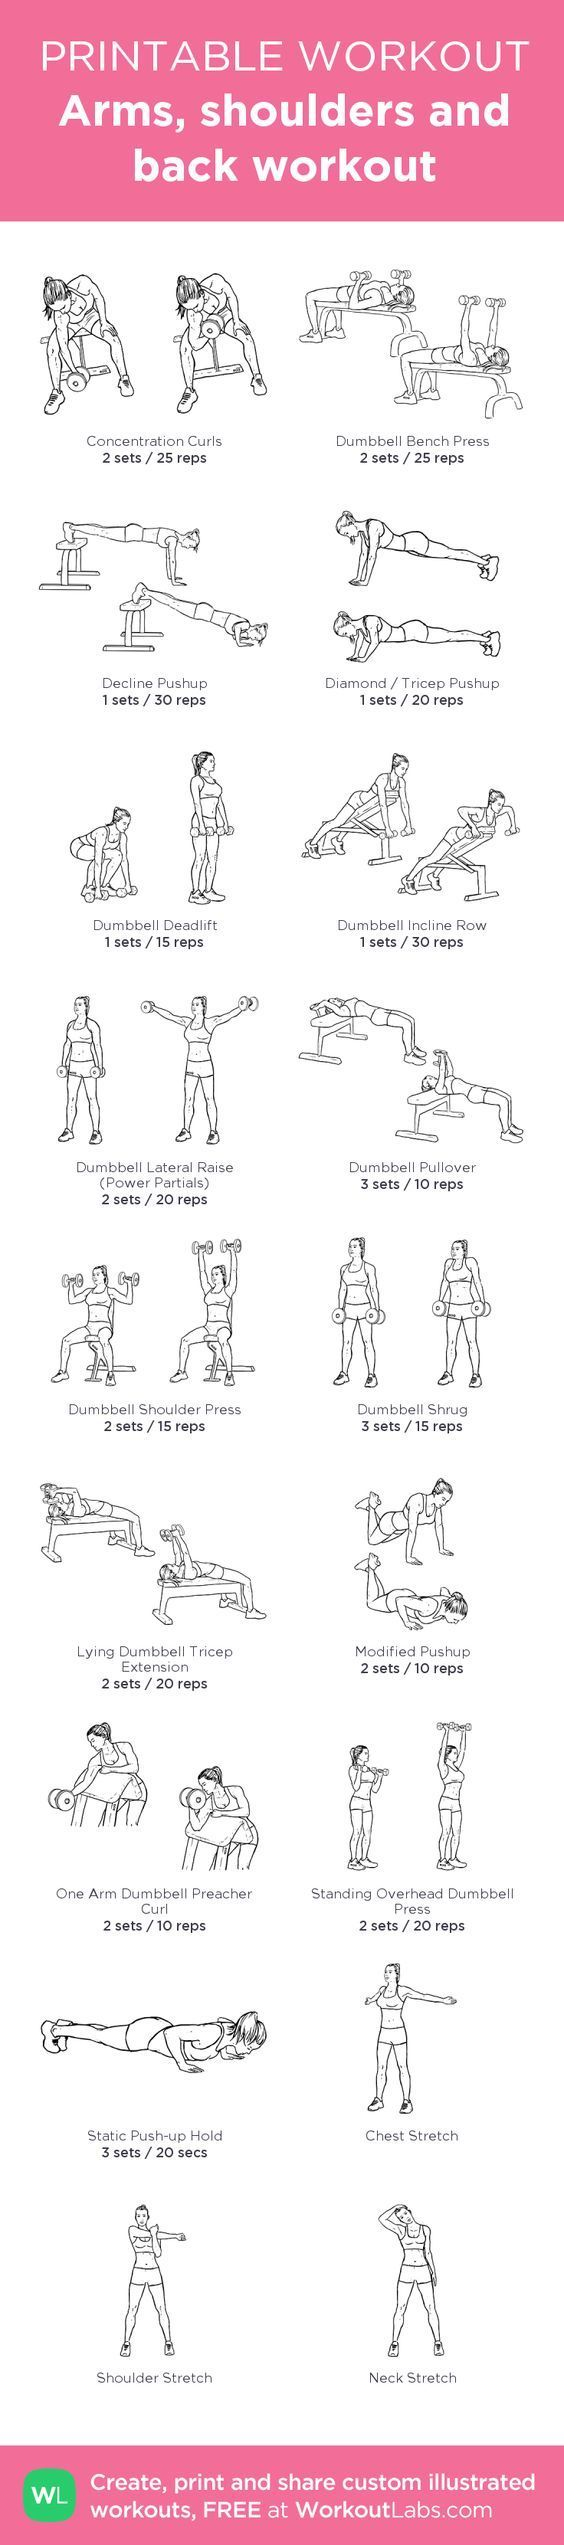 According to BodyBuilding.com, the back can be a problem area for a ...